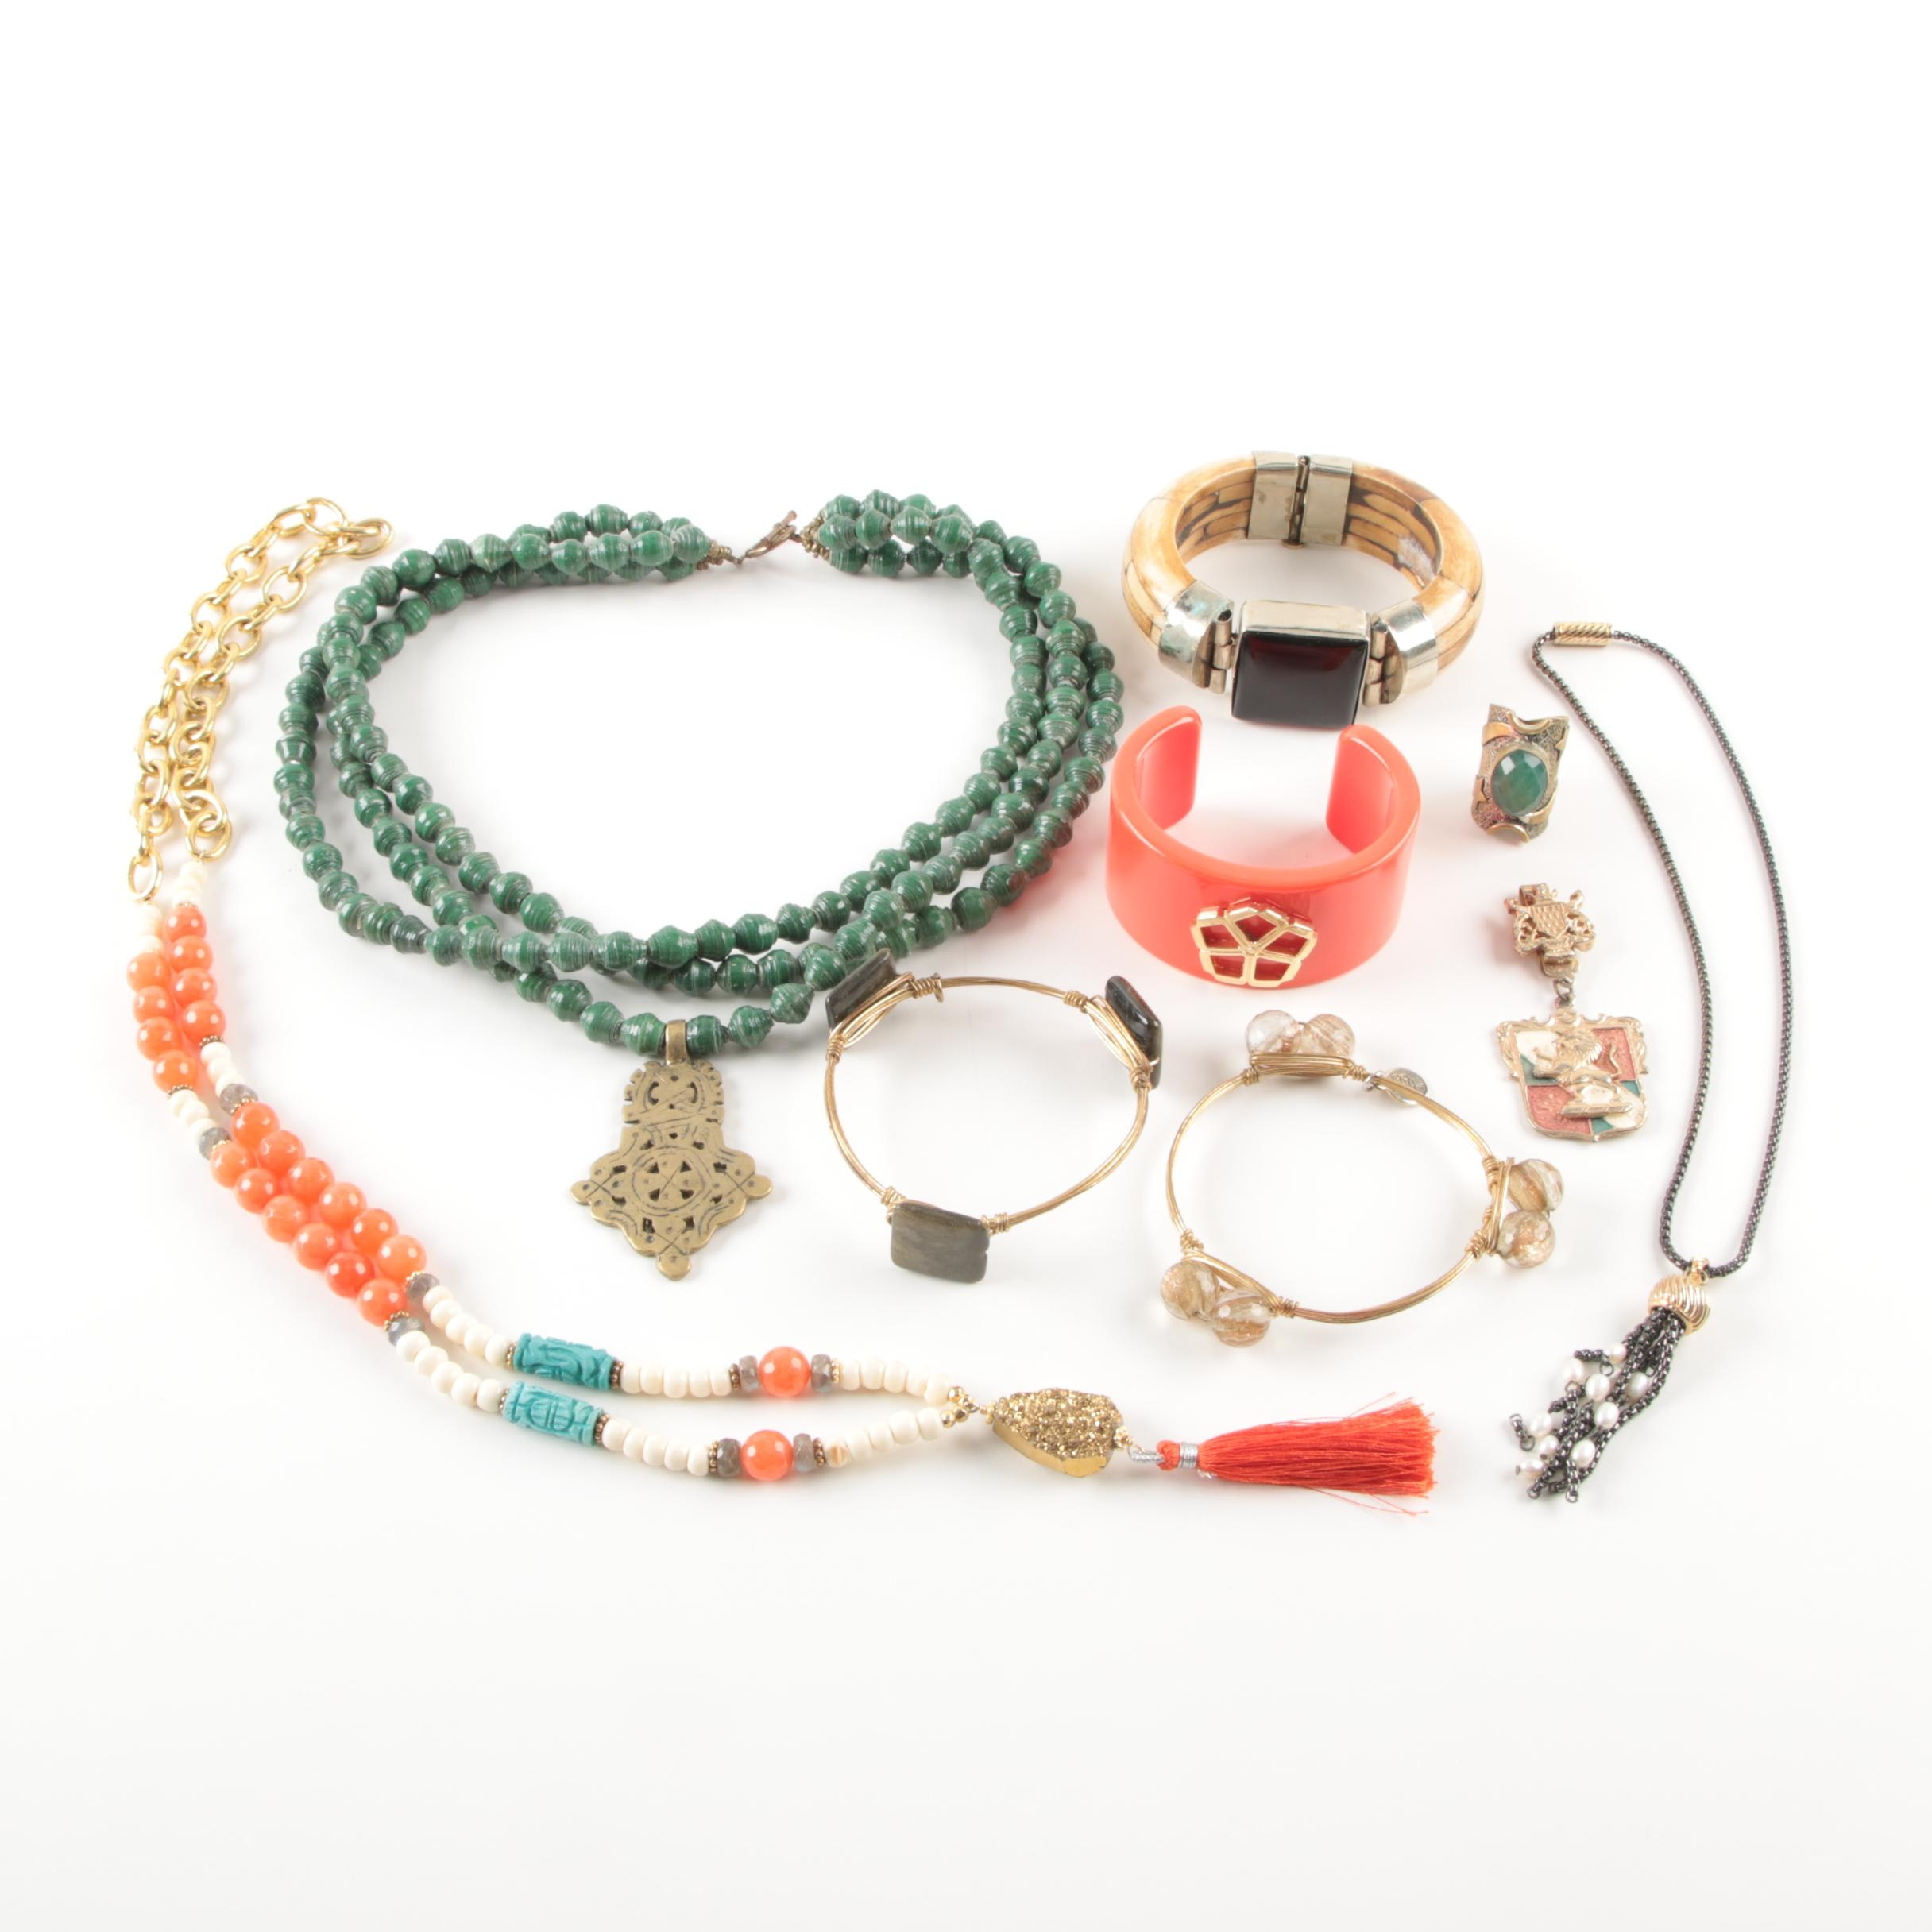 Selection of Costume Jewelry Including a Trina Turk Bracelet